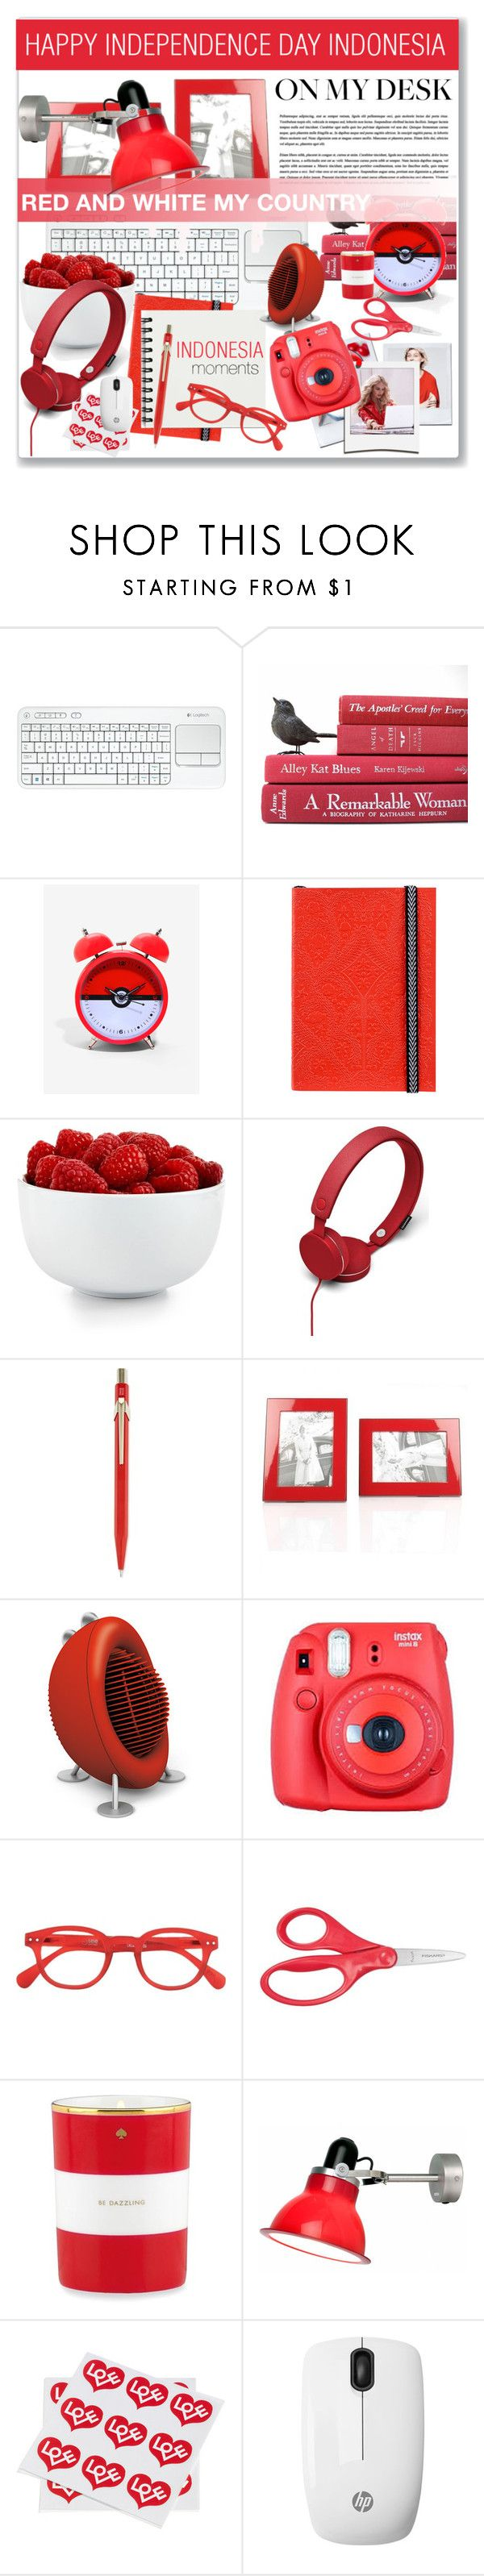 """HAPPY INDEPENDENCE DAY INDONESIA"" by nanawidia ❤ liked on Polyvore featuring interior, interiors, interior design, home, home decor, interior decorating, Logitech, Christian Lacroix, The Cellar and Urbanears"